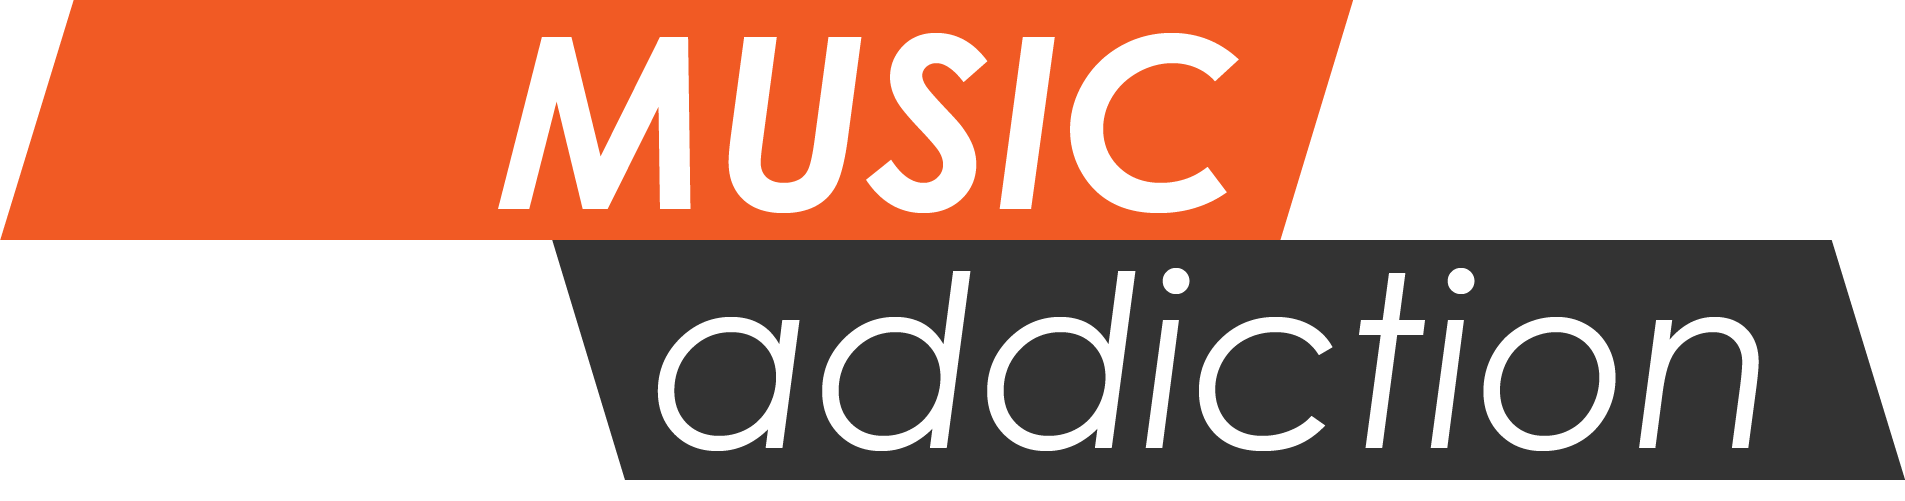 Music banner png. Addiction